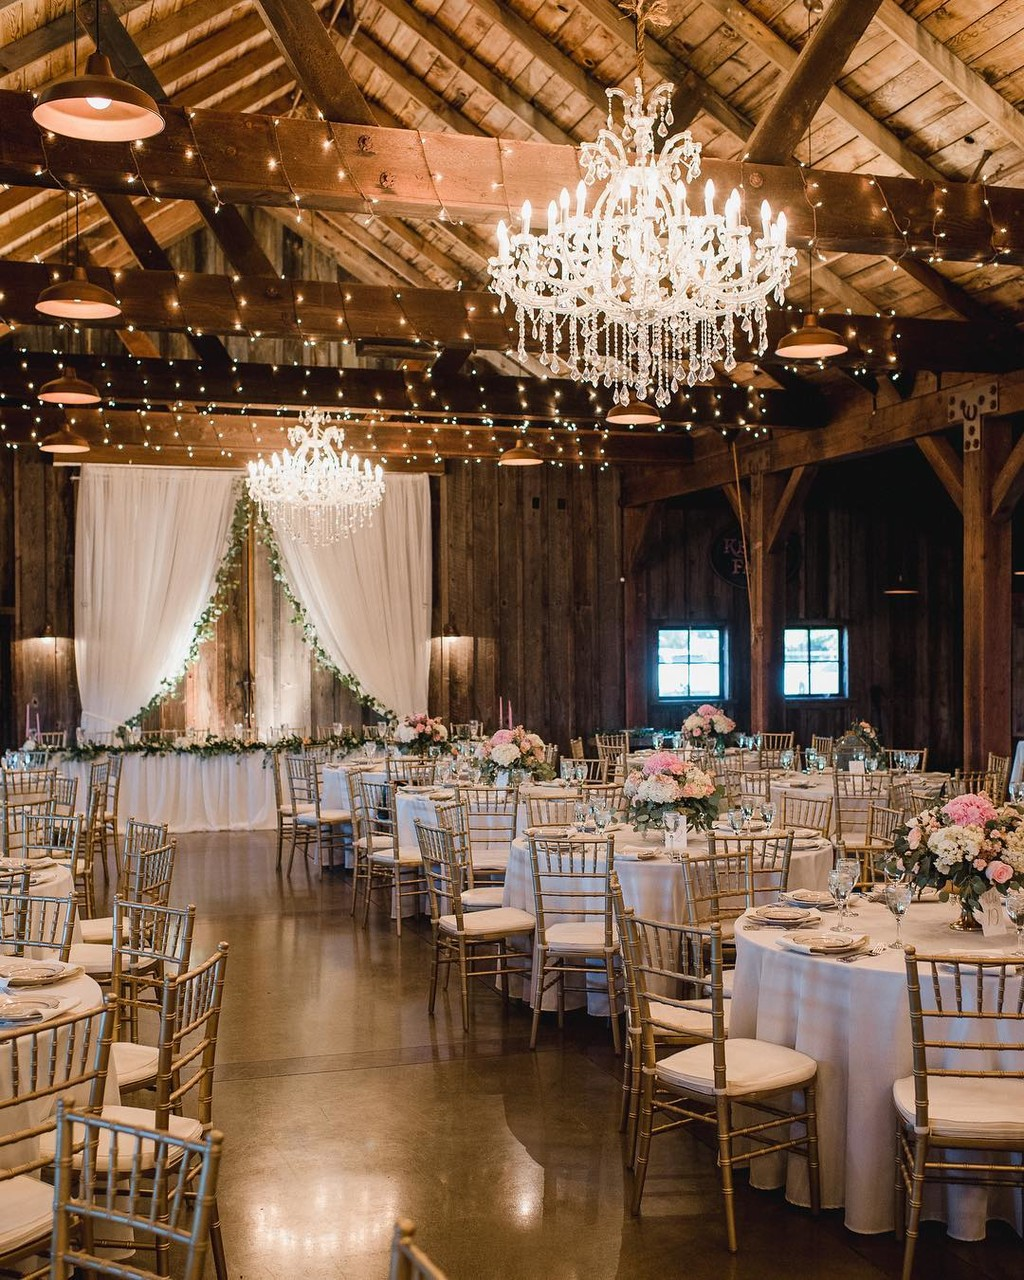 So in love with this beautiful venue! @thekelleyfarm